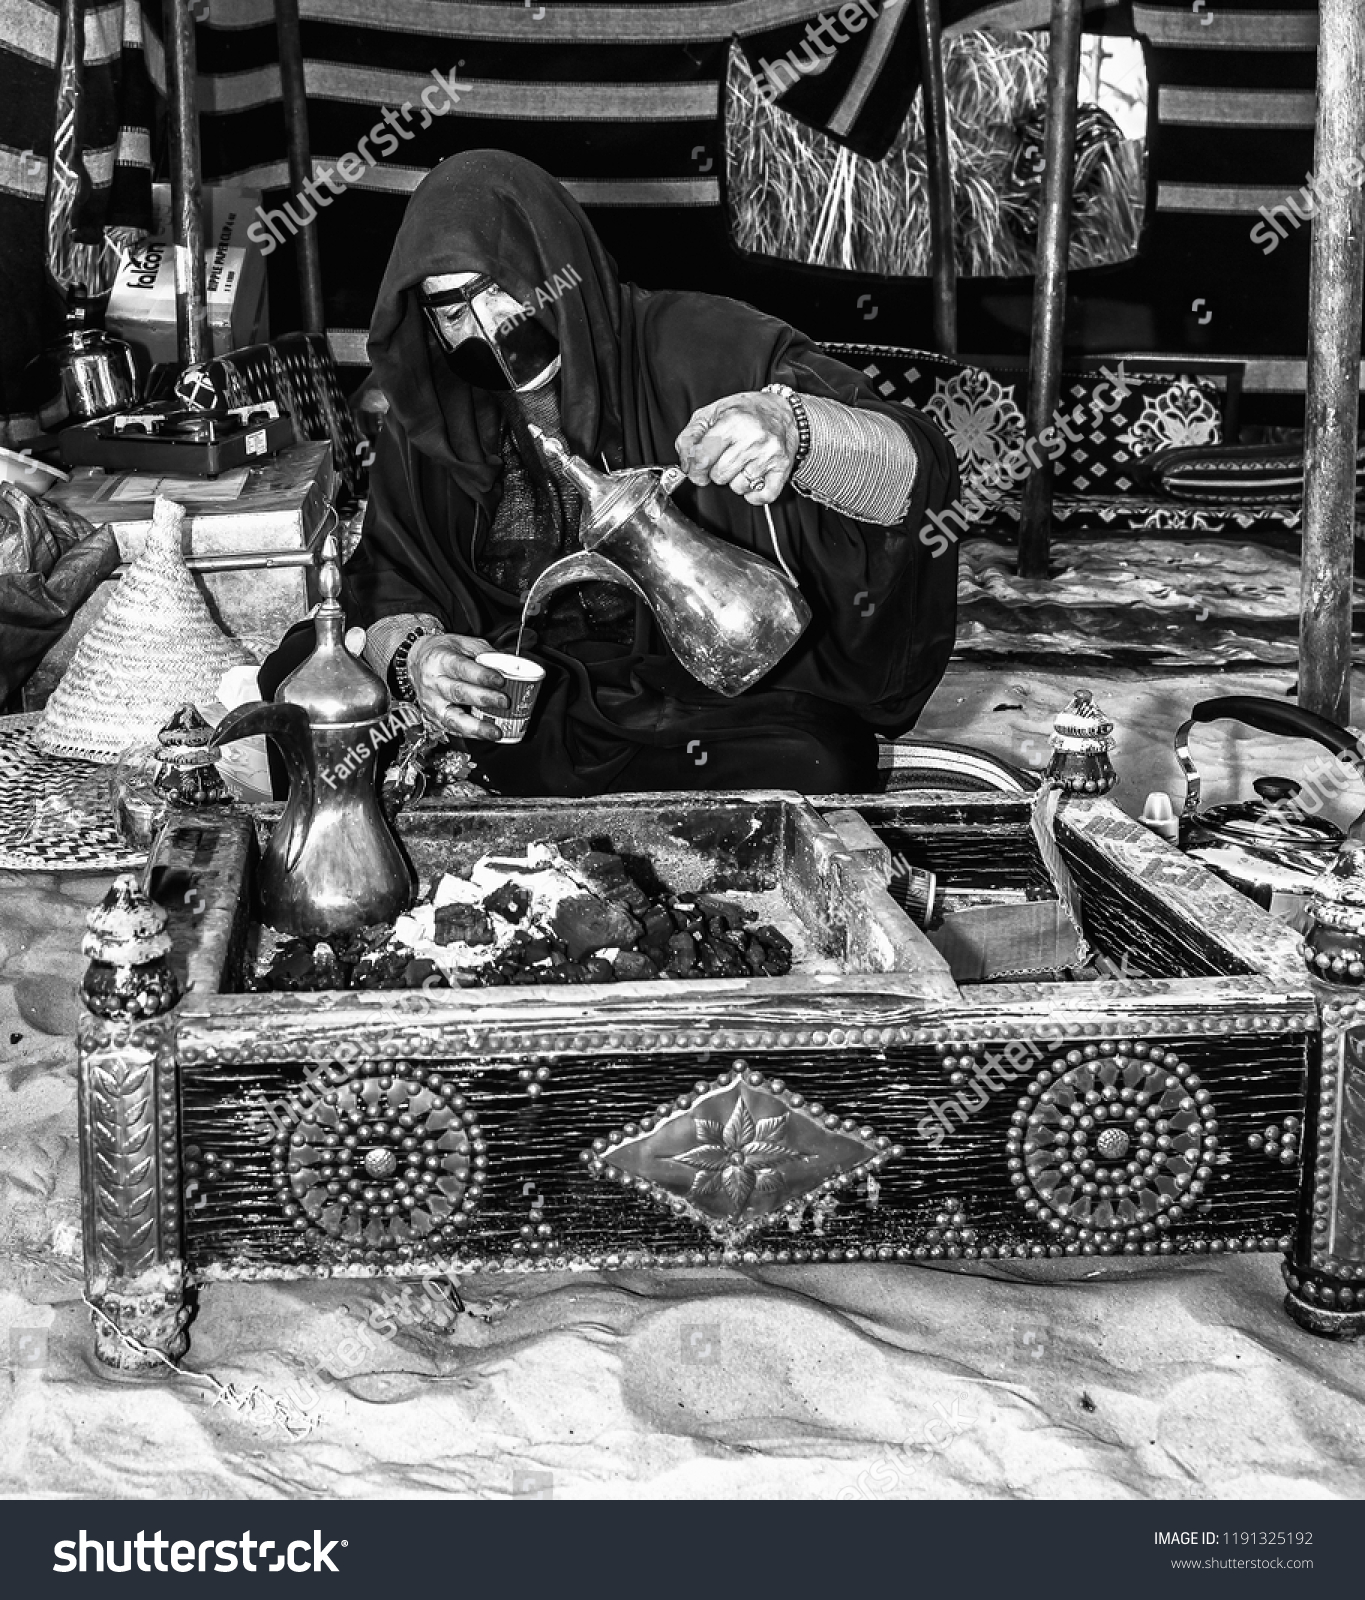 Black and white photography photographed on 23 11 2017 abu dhabi uae a woman offers arabic coffee to sheikh zayed heritage festival visitors image